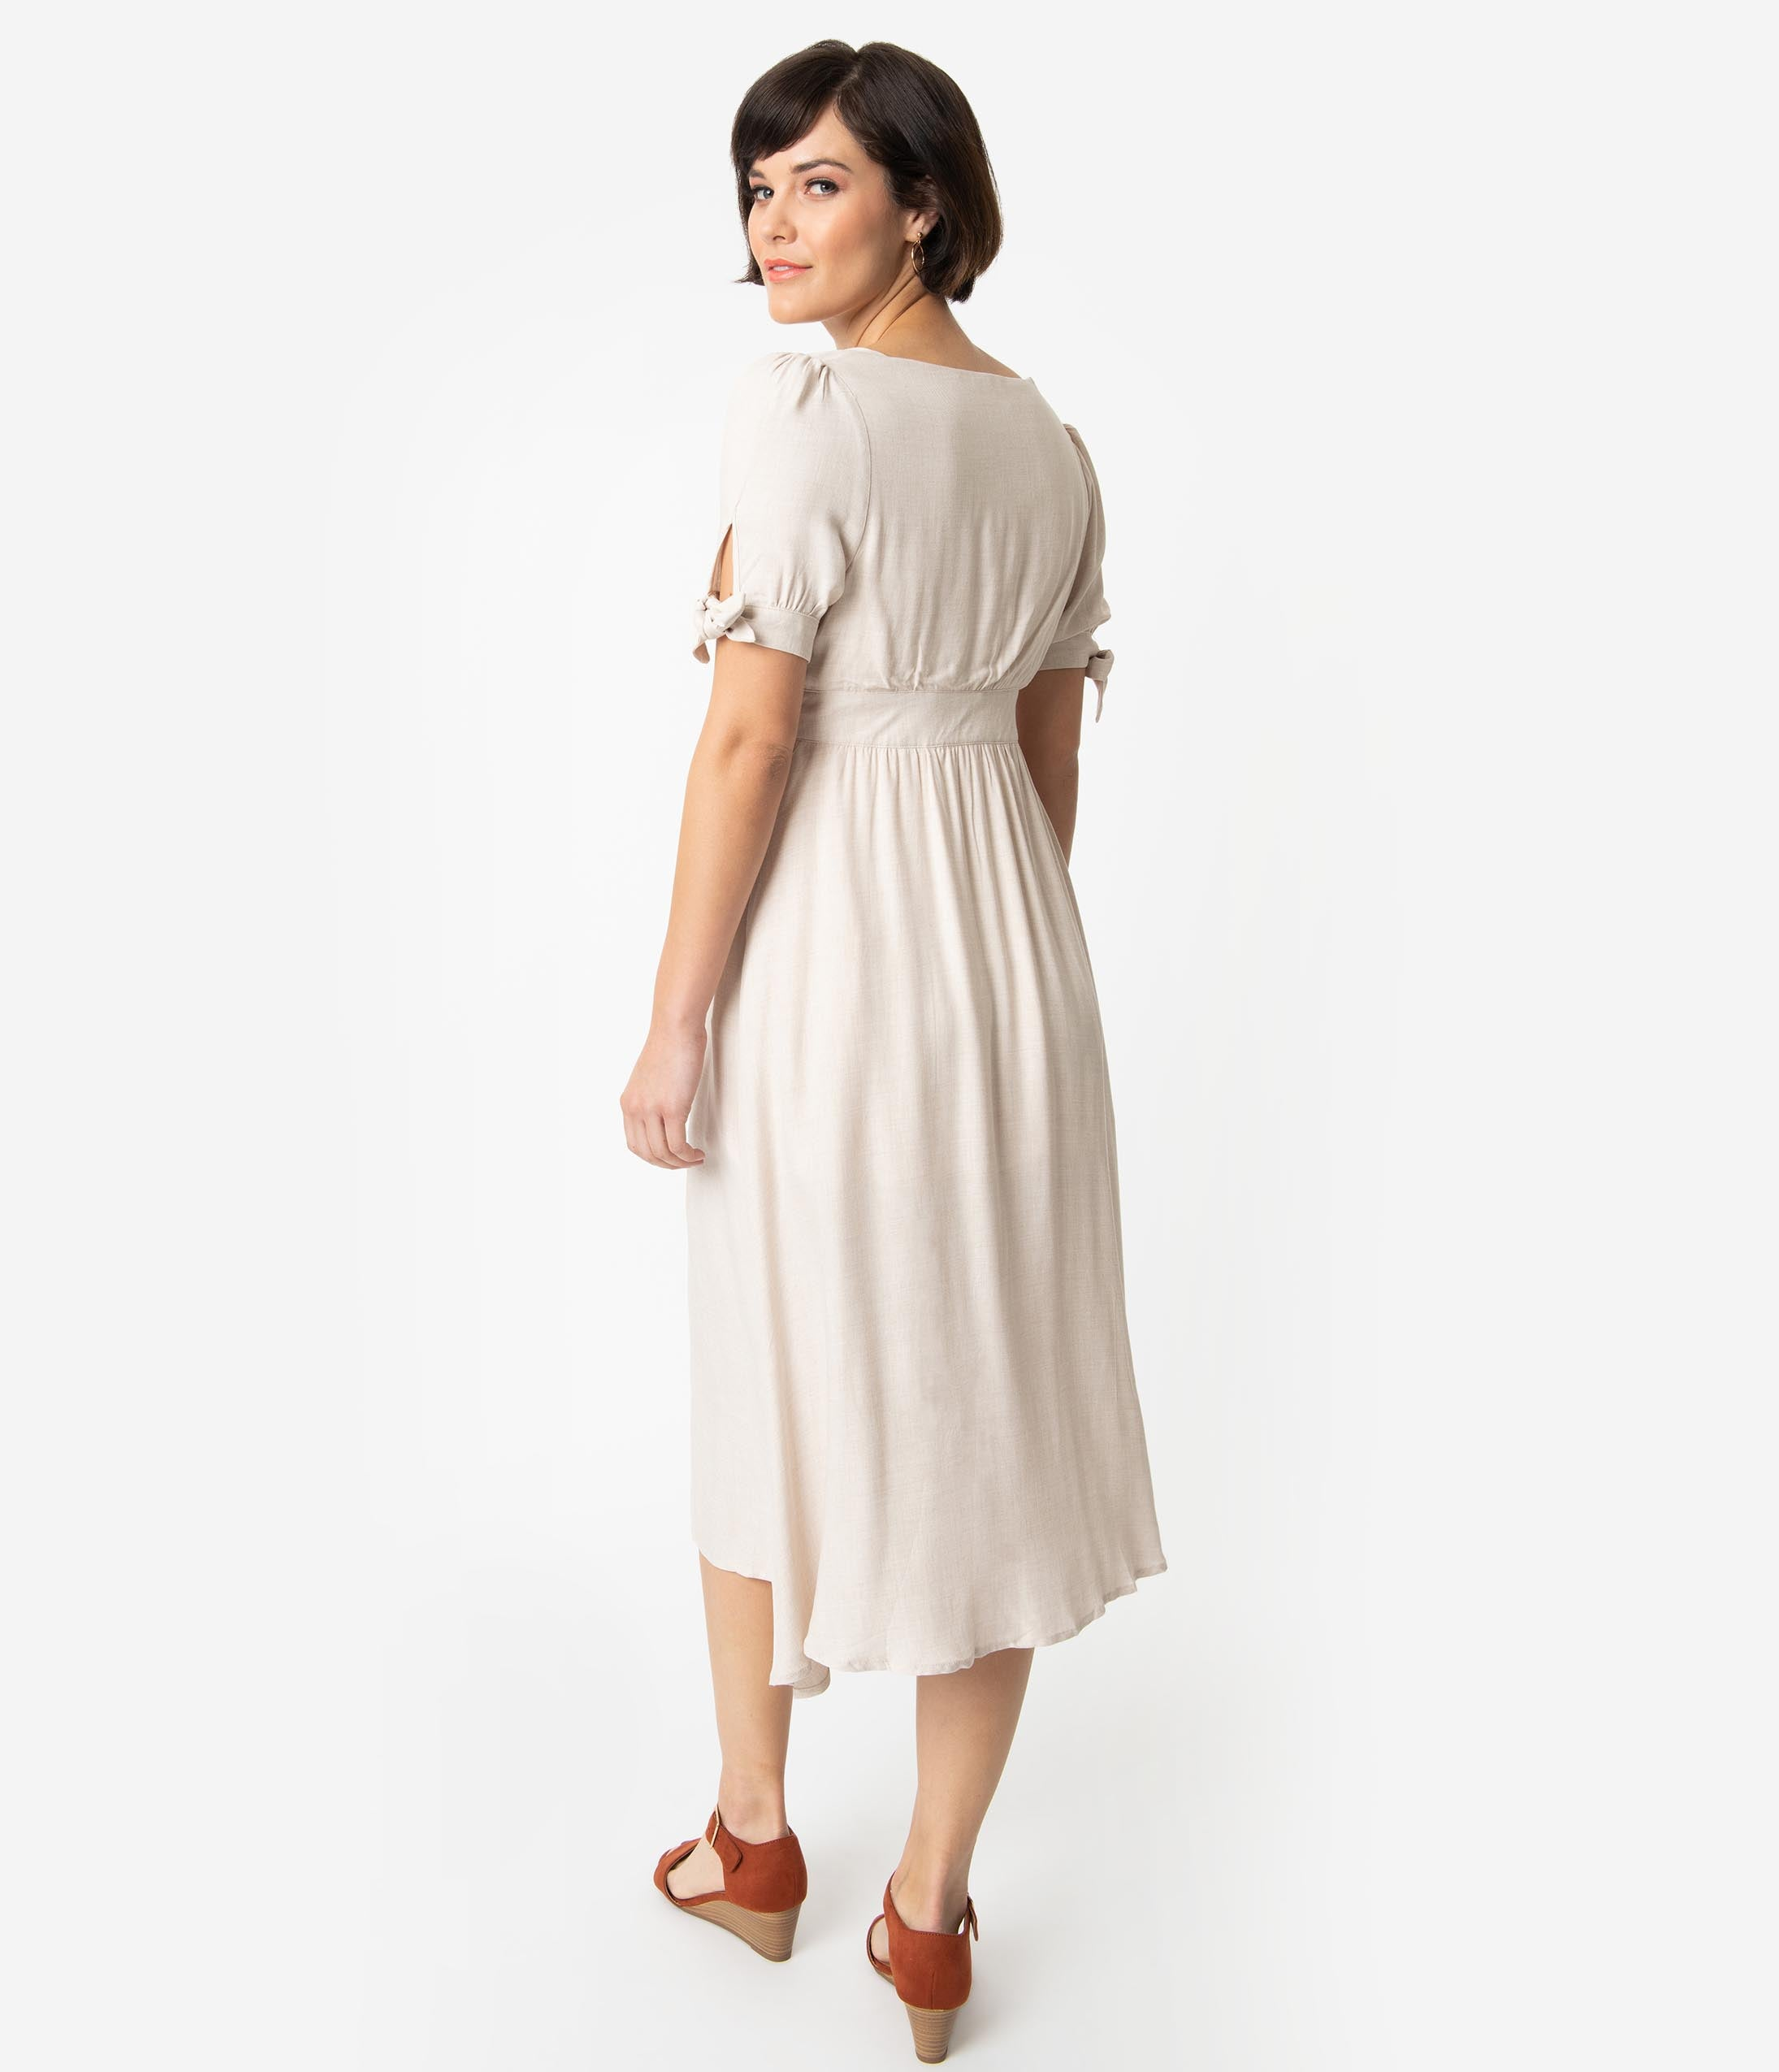 eceff7fcece 1930s Style Toasted Oatmeal Woven Short Sleeve Button Up Midi Dress